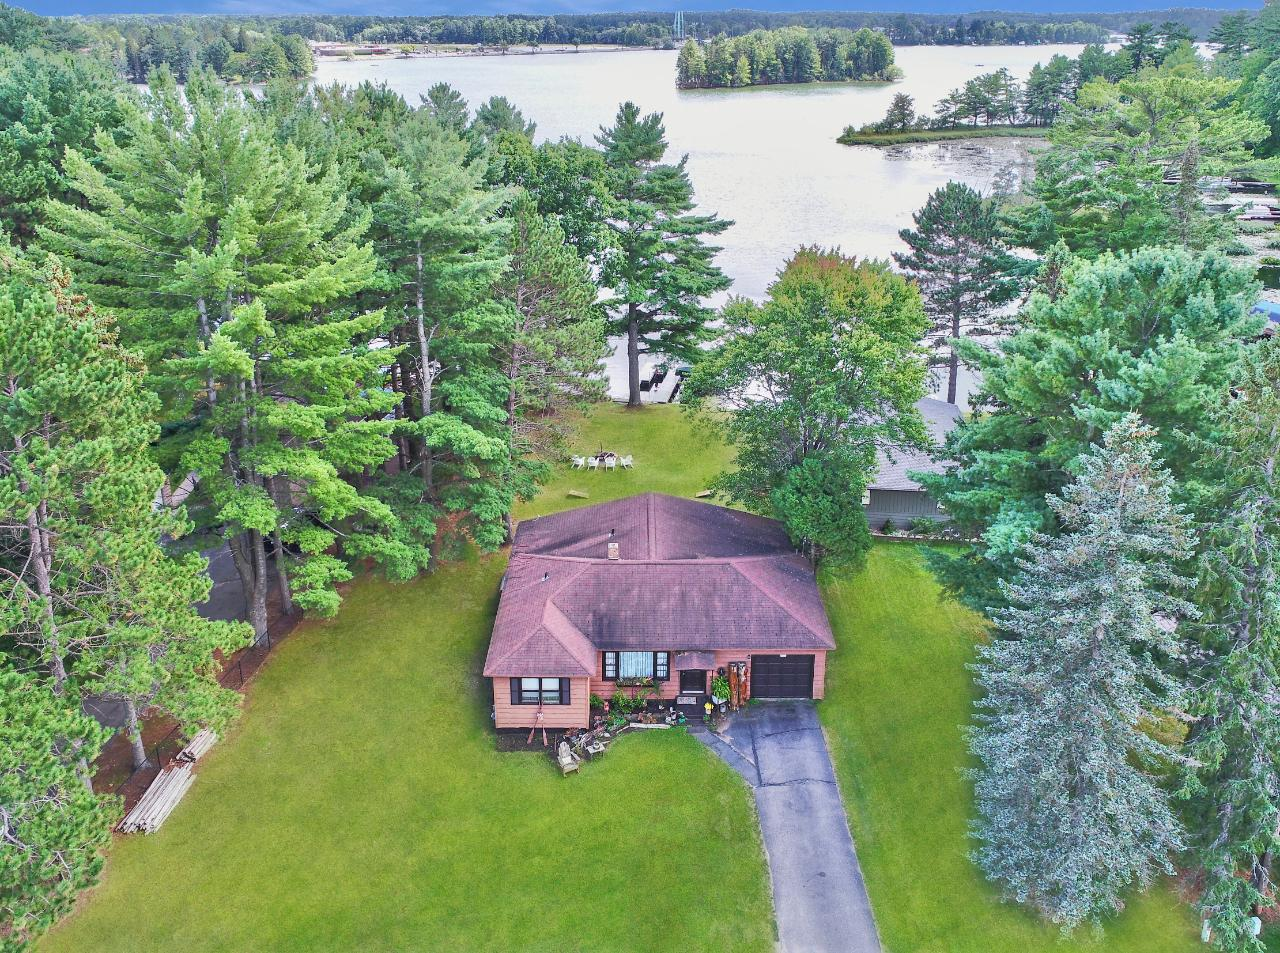 "Cozy cedar sided 2 BR, 2 BA home located on the much desired Minocqua Chain. This ranch-style home features 2 BR, 2 BA on the main floor, updated kitchen, new flooring, and an attached garage. The basement is unfinished and you could make what you'd like of it and add more finished sq footage. You can't beat this location with the option to walk or bike to town and hop on the Bearskin Trail! This home has ZERO steps to the lake and is pancake flat with southern exposure. There is a large yard with plenty of space to play bags, entertain, and enjoy your hot tub overlooking the lake. Enjoy the ""chain life"" by boating to many bars and restaurants, watch the weekend water ski shows, or tie up to many of the state islands this chain as to offer!"